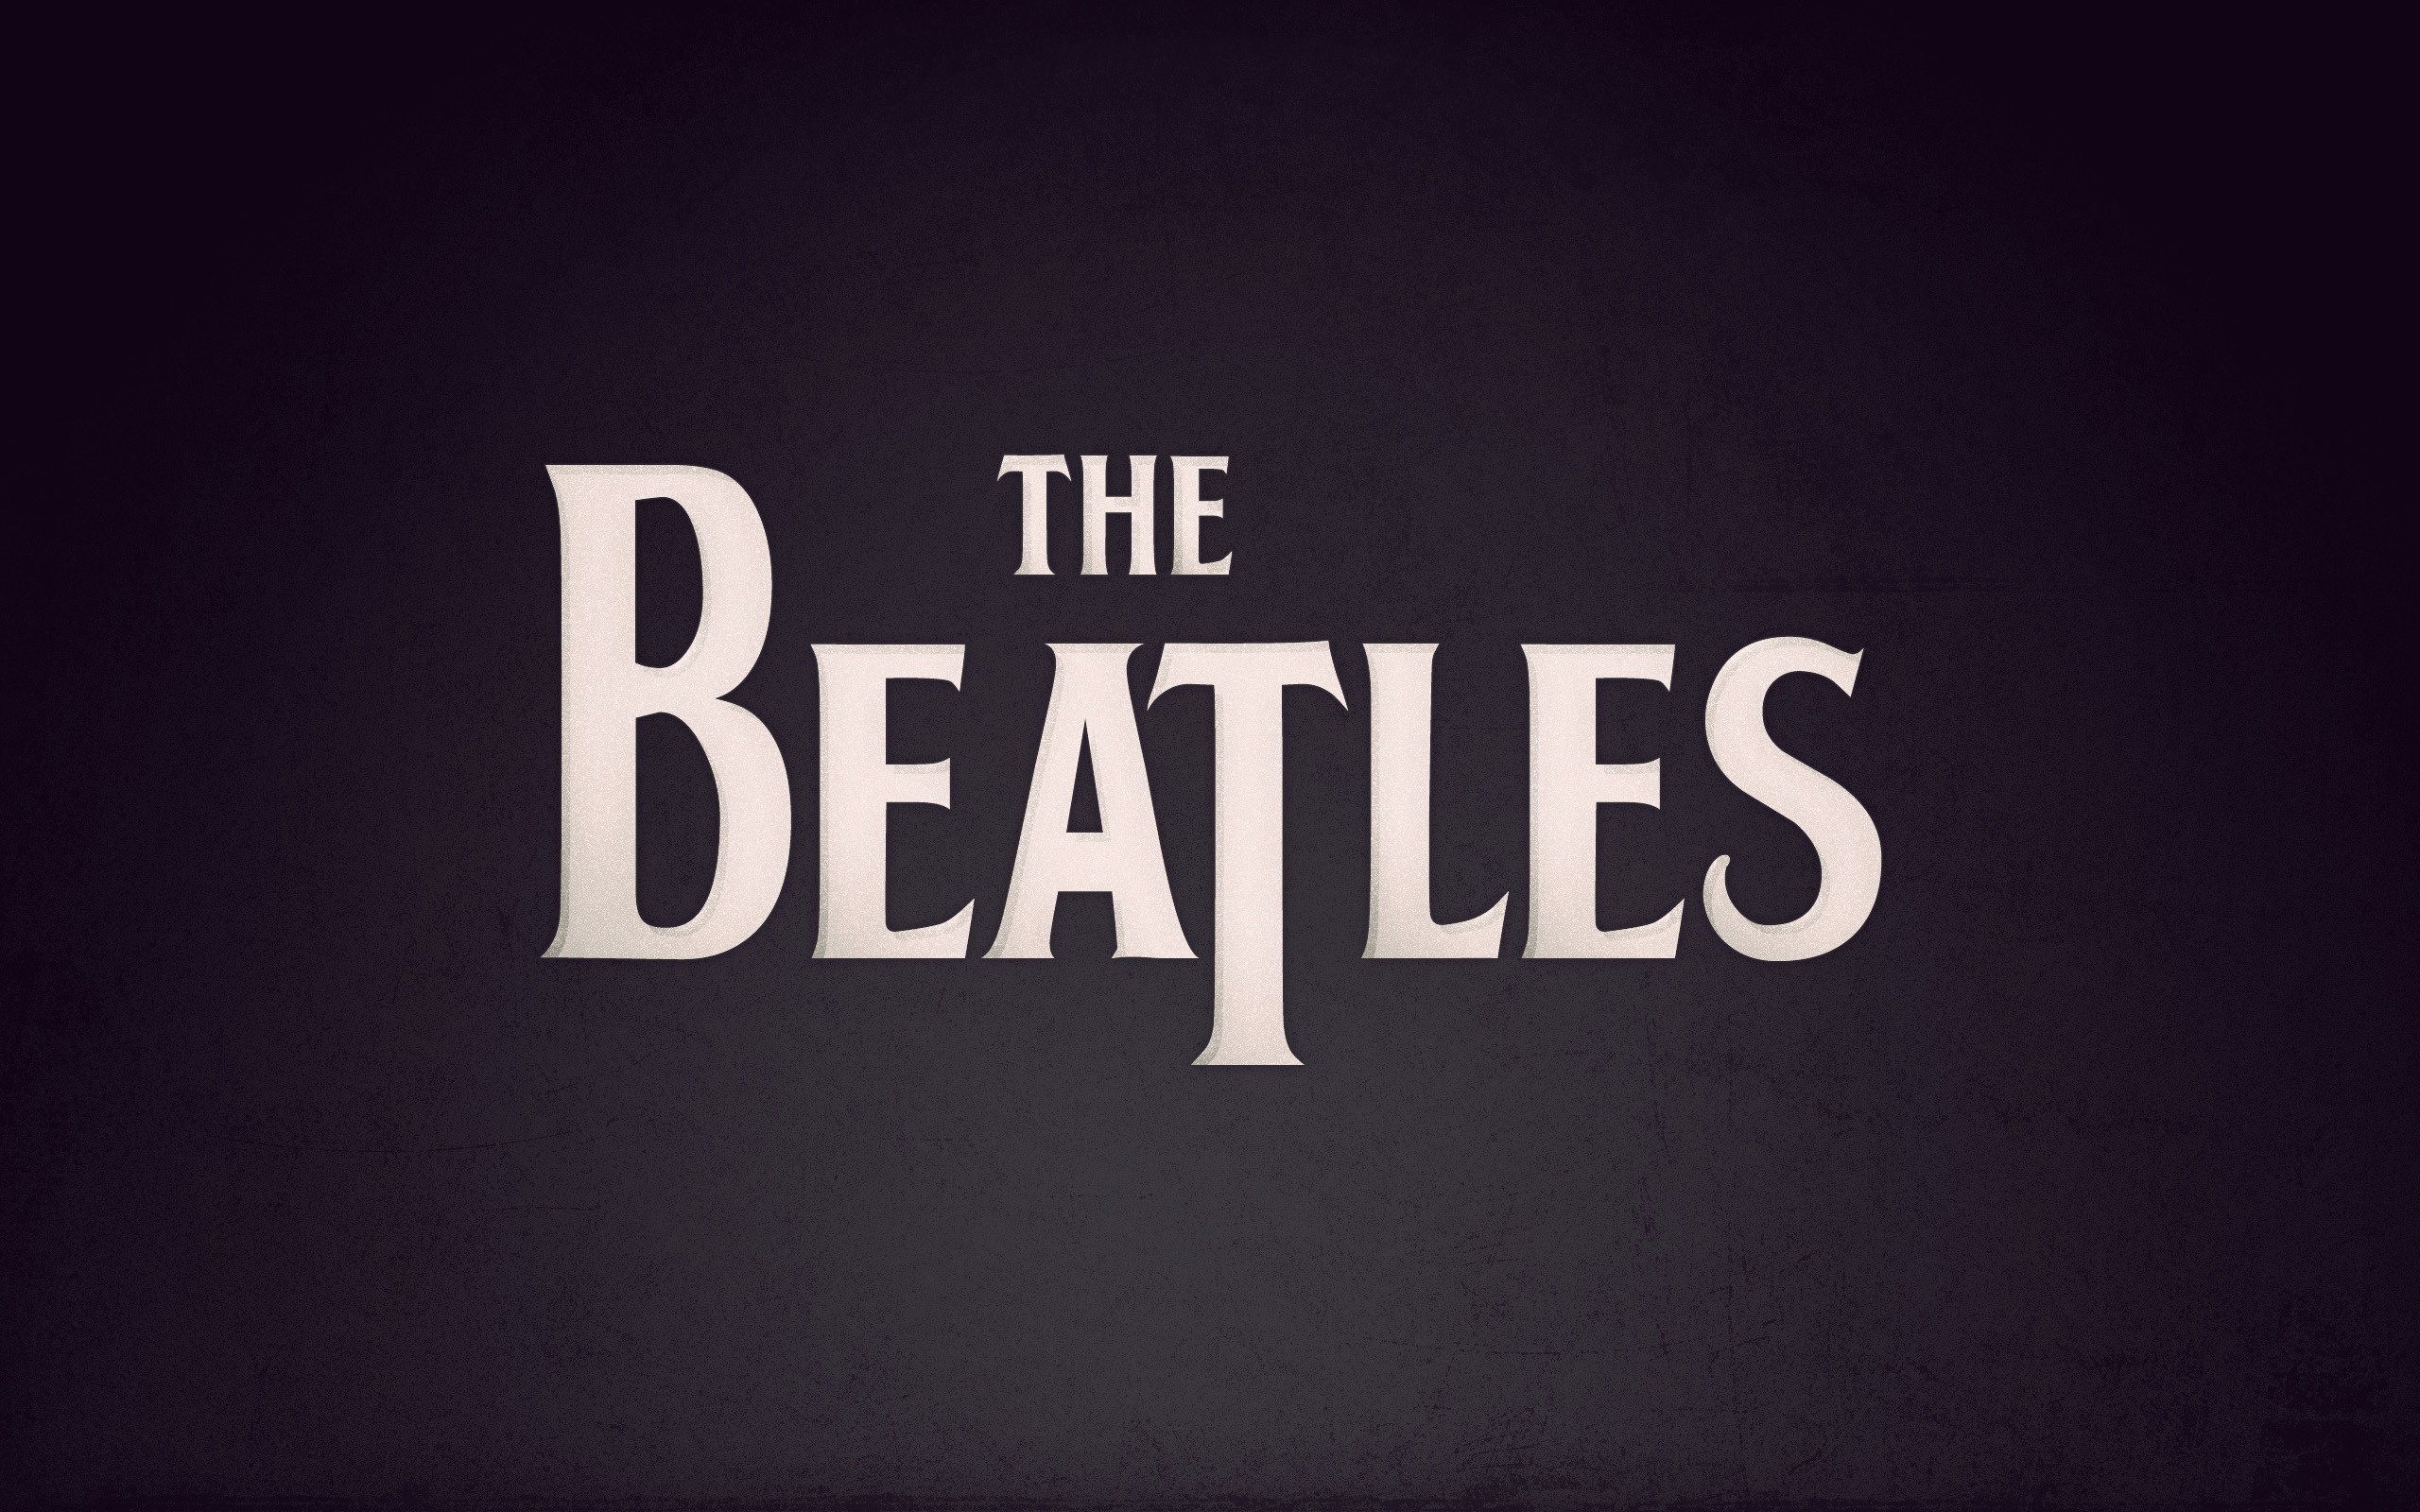 Image The Beatles Wallpapers And Stock Photos